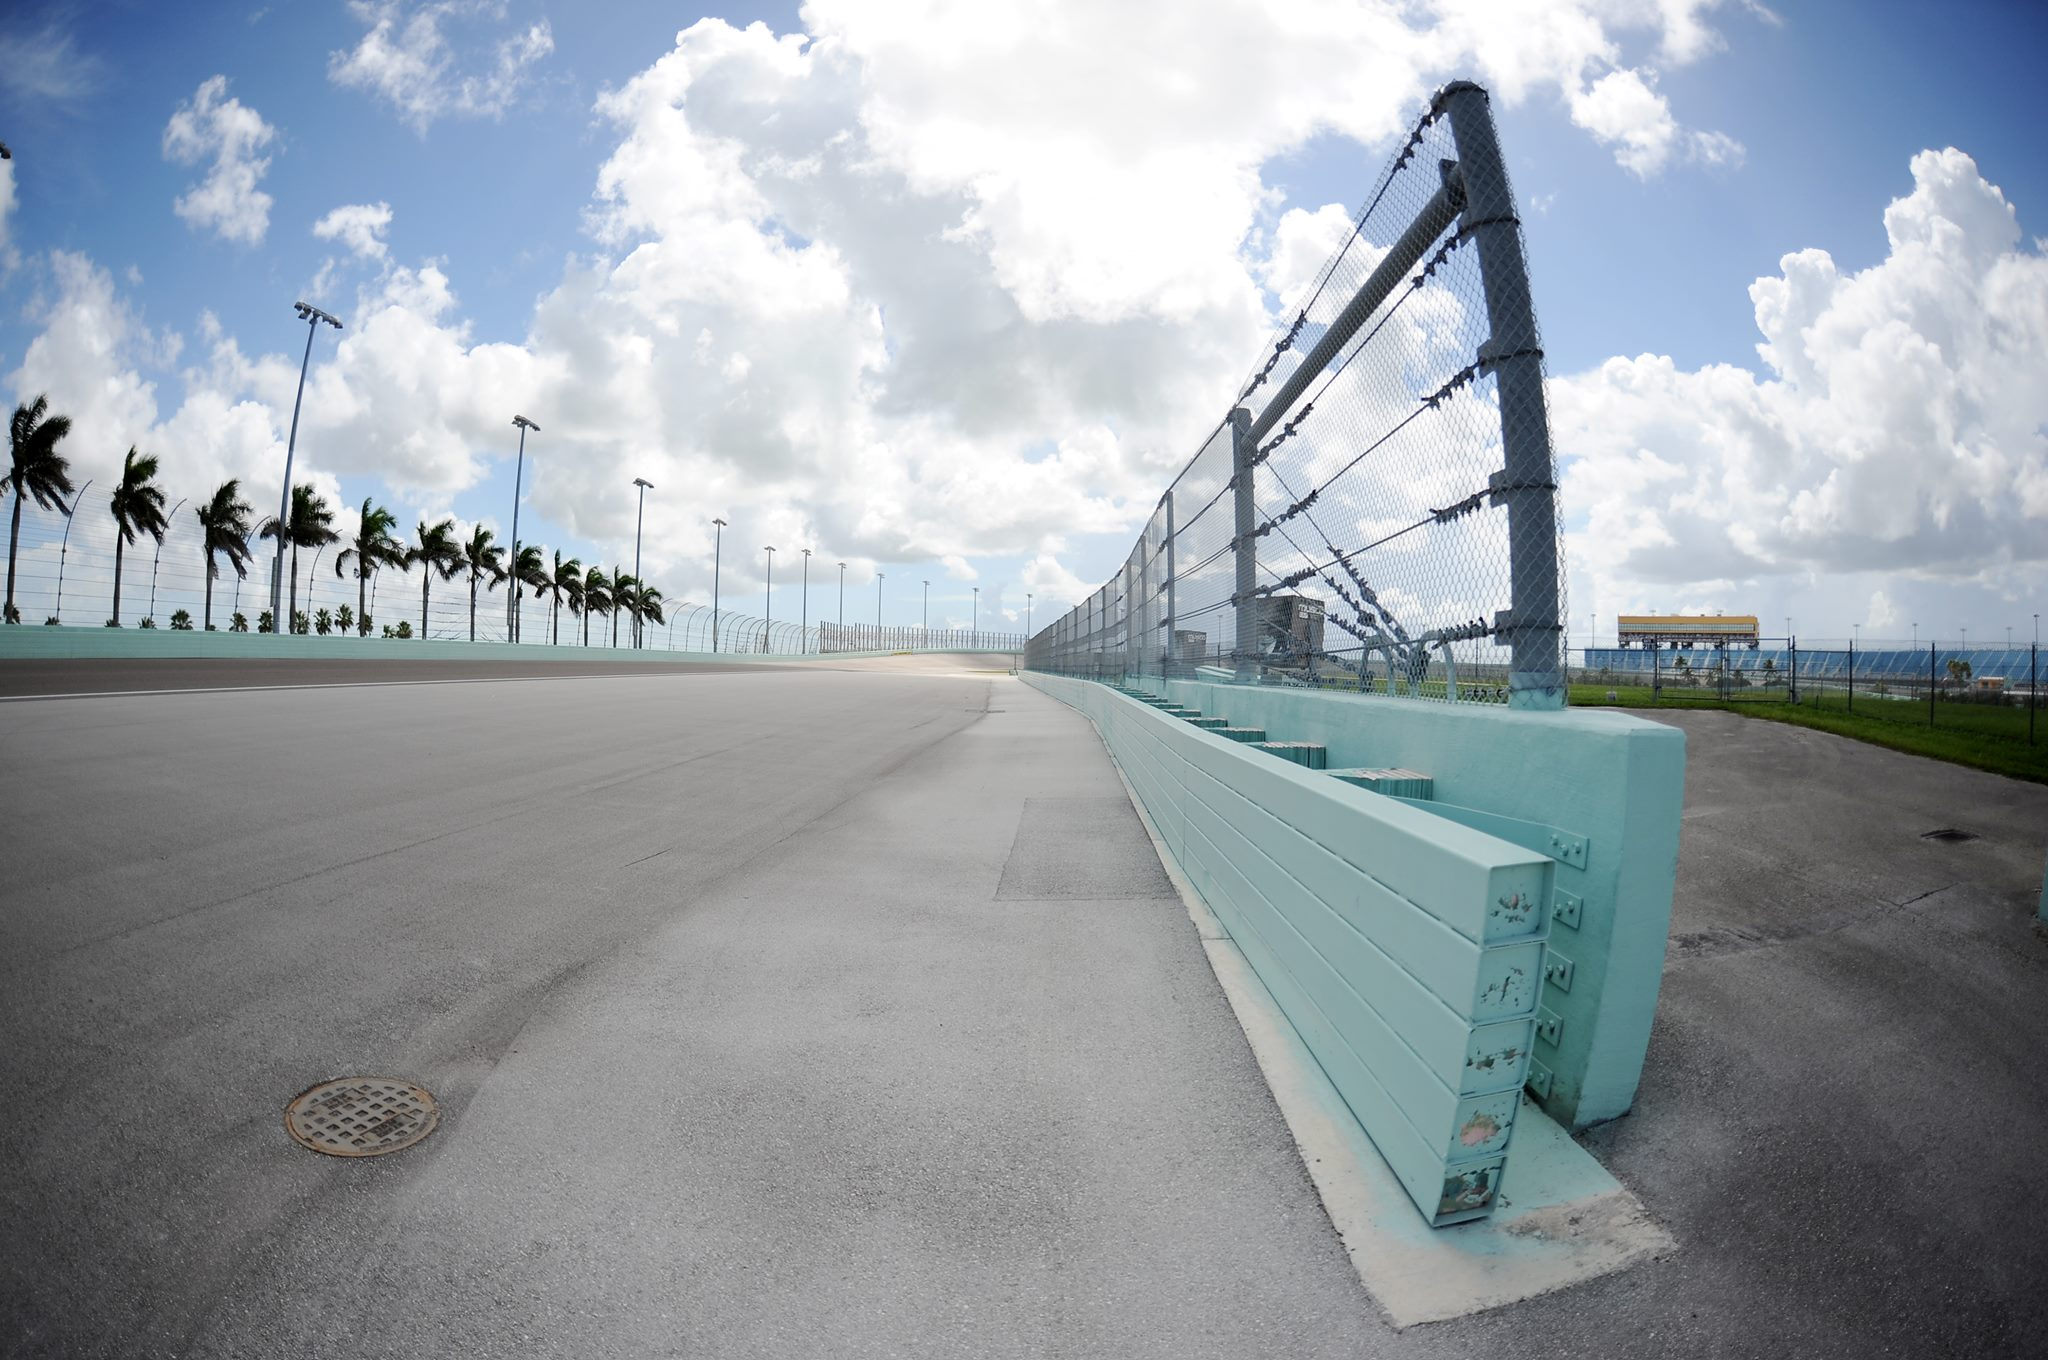 Homestead-Miami Speedway Hurricane Irma path